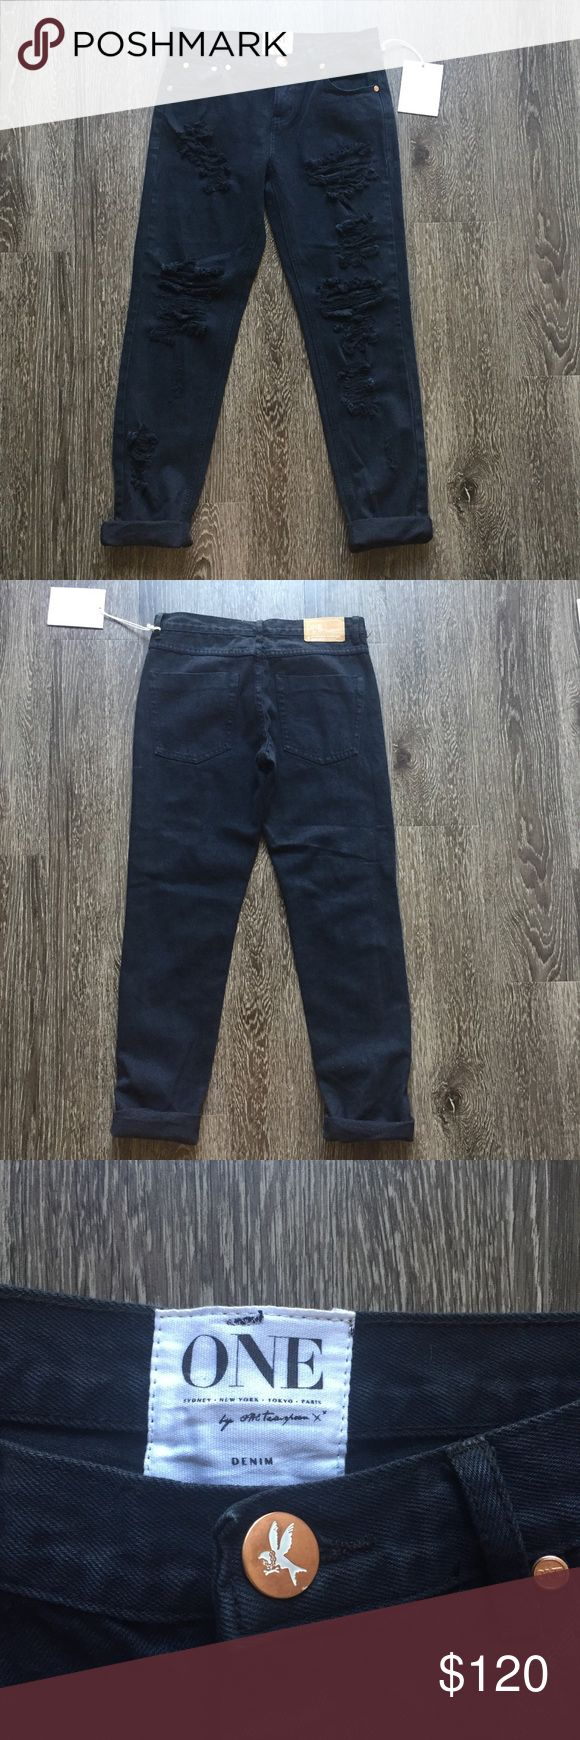 One Teaspoon awesome baggies The best boyfriend jeans you will ever wear! These are a closet staple and are super versatile. Open to reasonable offers :) One Teaspoon Jeans Boyfriend